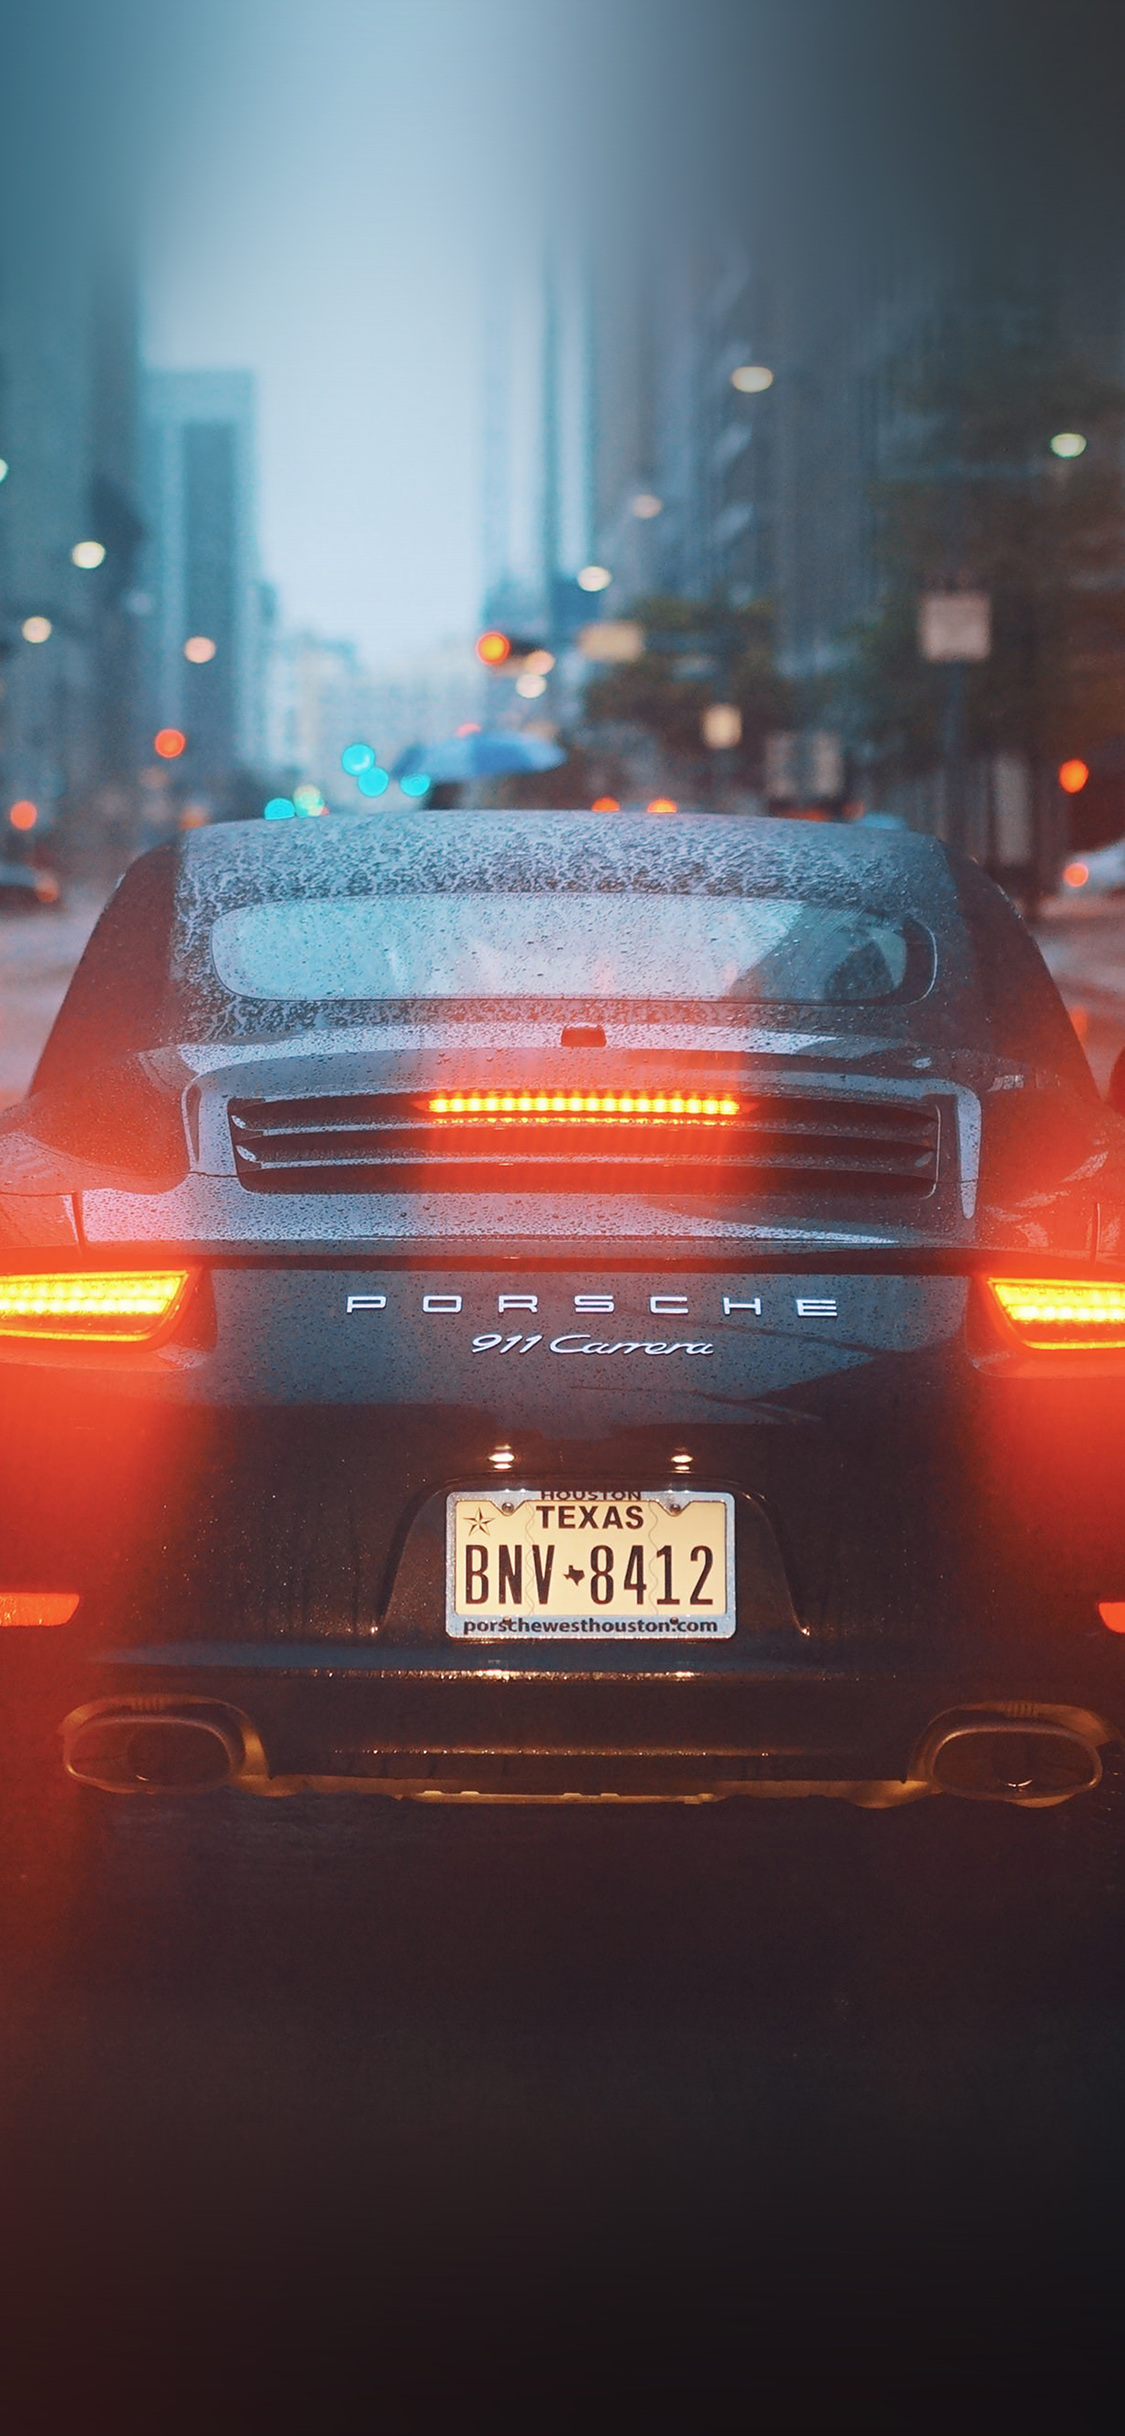 Np26 Car Porche Street City Nature Wallpaper